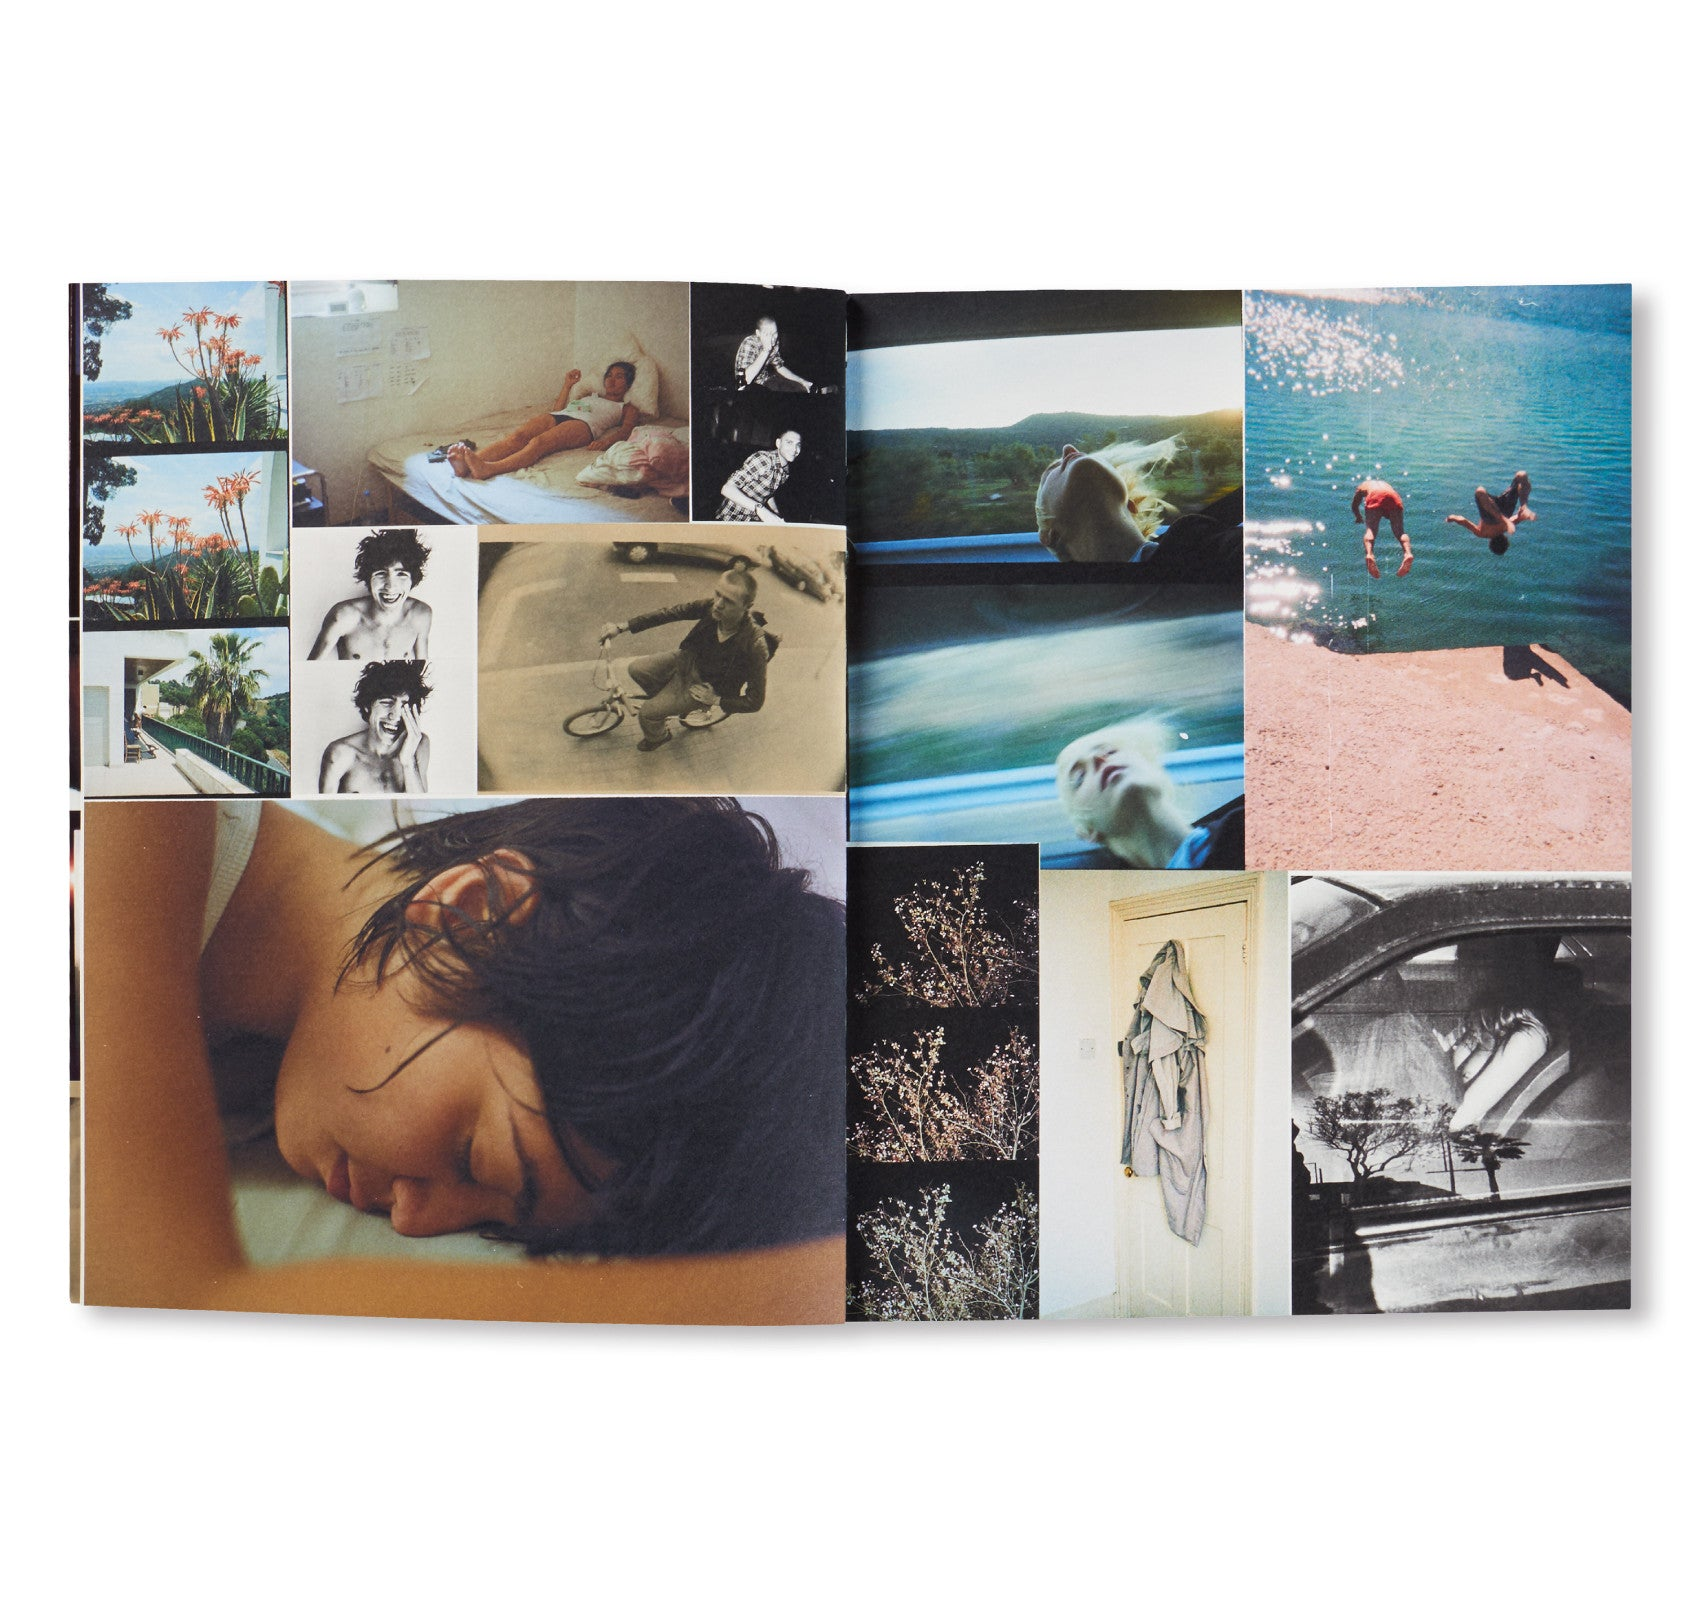 THE OTHER DAY by Quentin de Briey [SPECIAL EDITION / SIGNED]